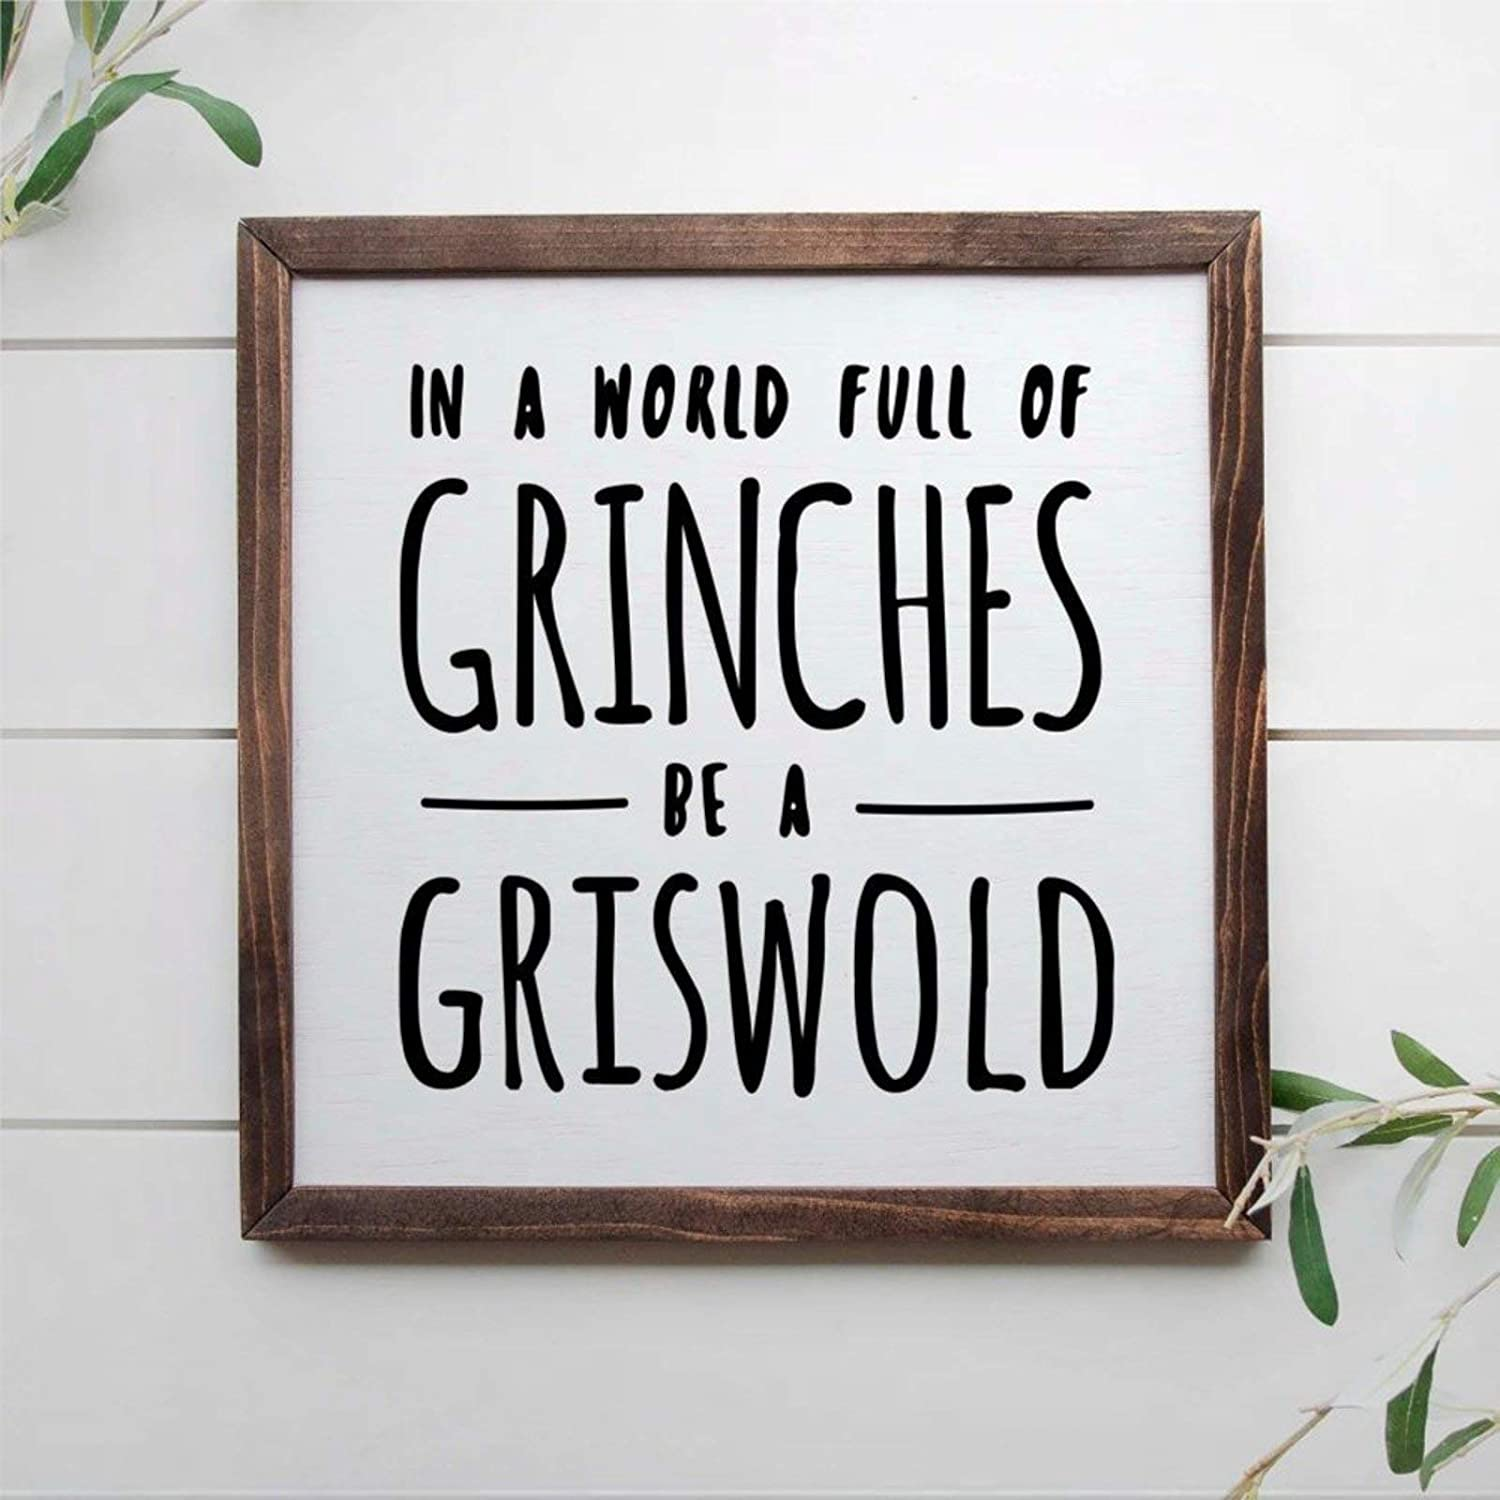 DONL9BAUER in A World Full of Grinches Be A Griswold, 12x12 Framed Wooden Sign, Christmas Vacation Sign, National Lampoons, Movie Quote Wall Hanging Farmhouse Home Decor Wall Art